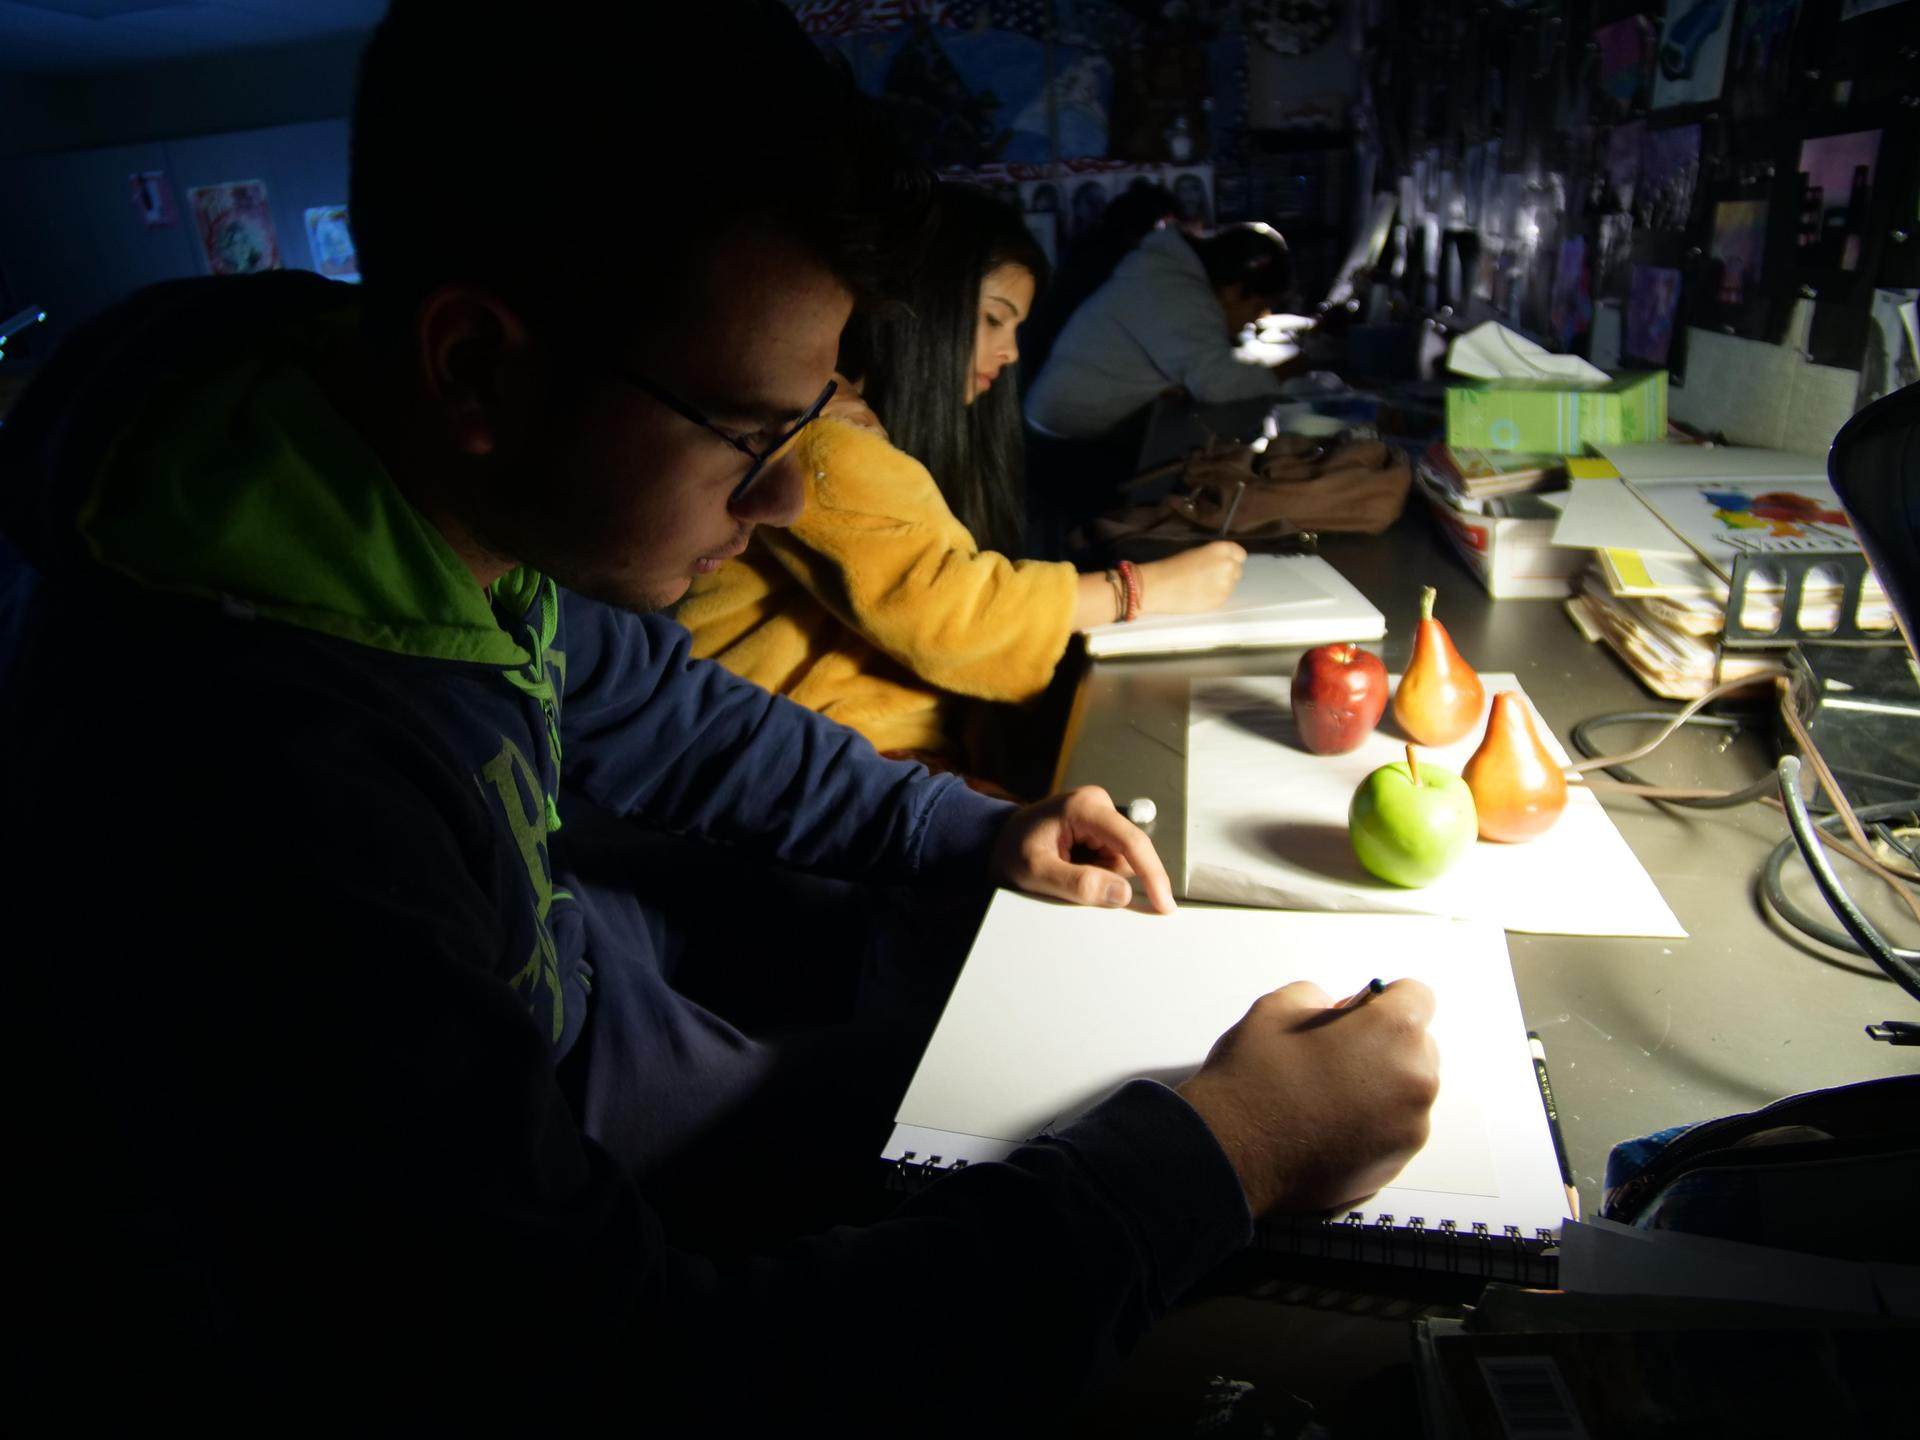 Art student works on shading skills in darkened classroom.